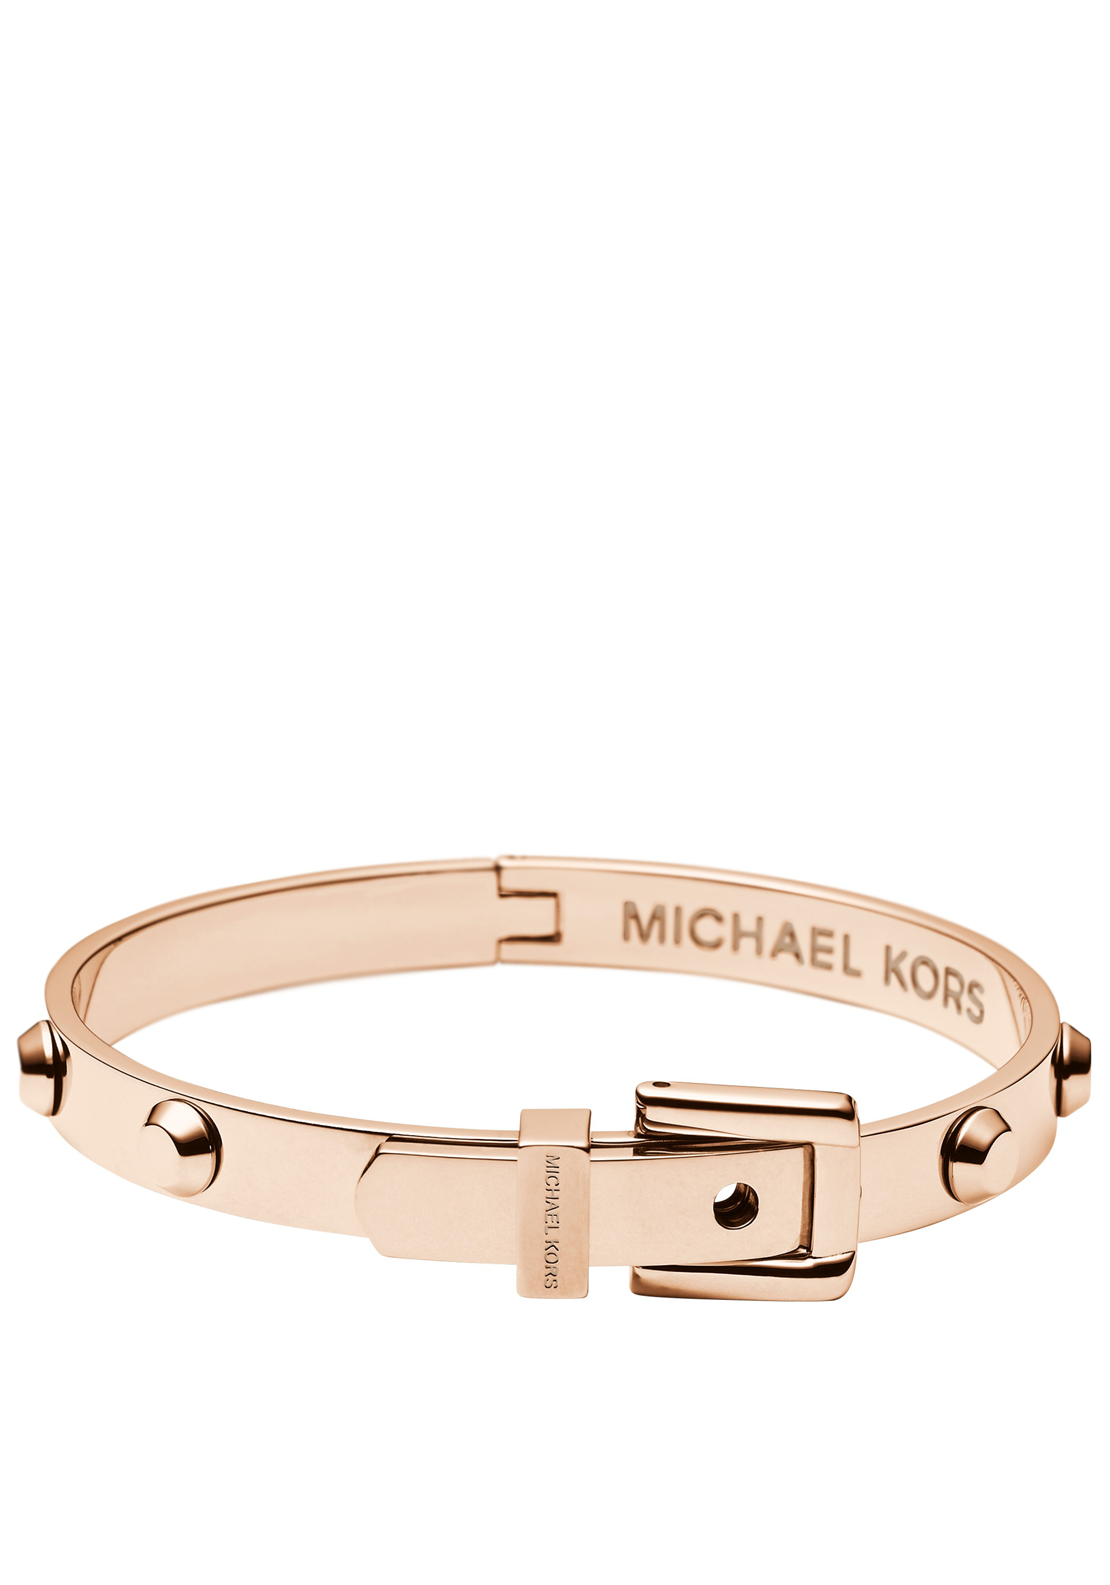 Michael Kors Womens Astor Stud Buckle Bangle, Rose Gold